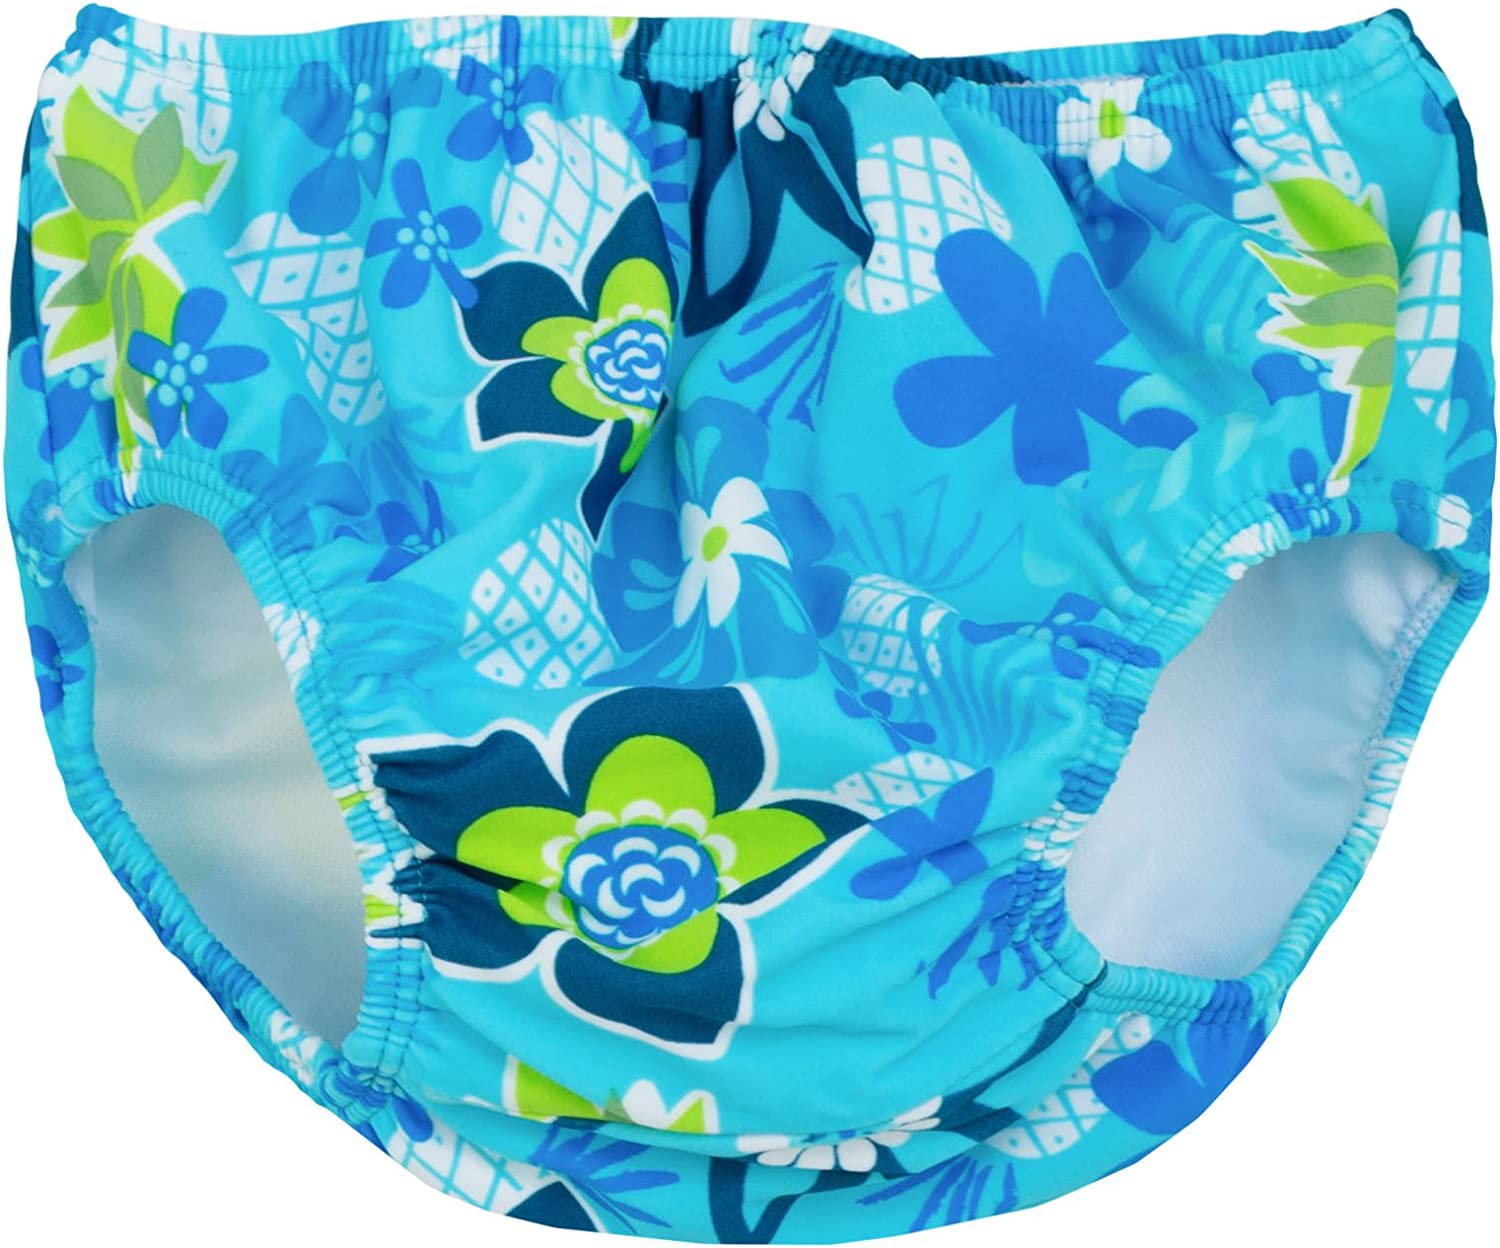 UPF 50 Sun Protection Swimsuit Tuga Girls Reusable Swim Diapers